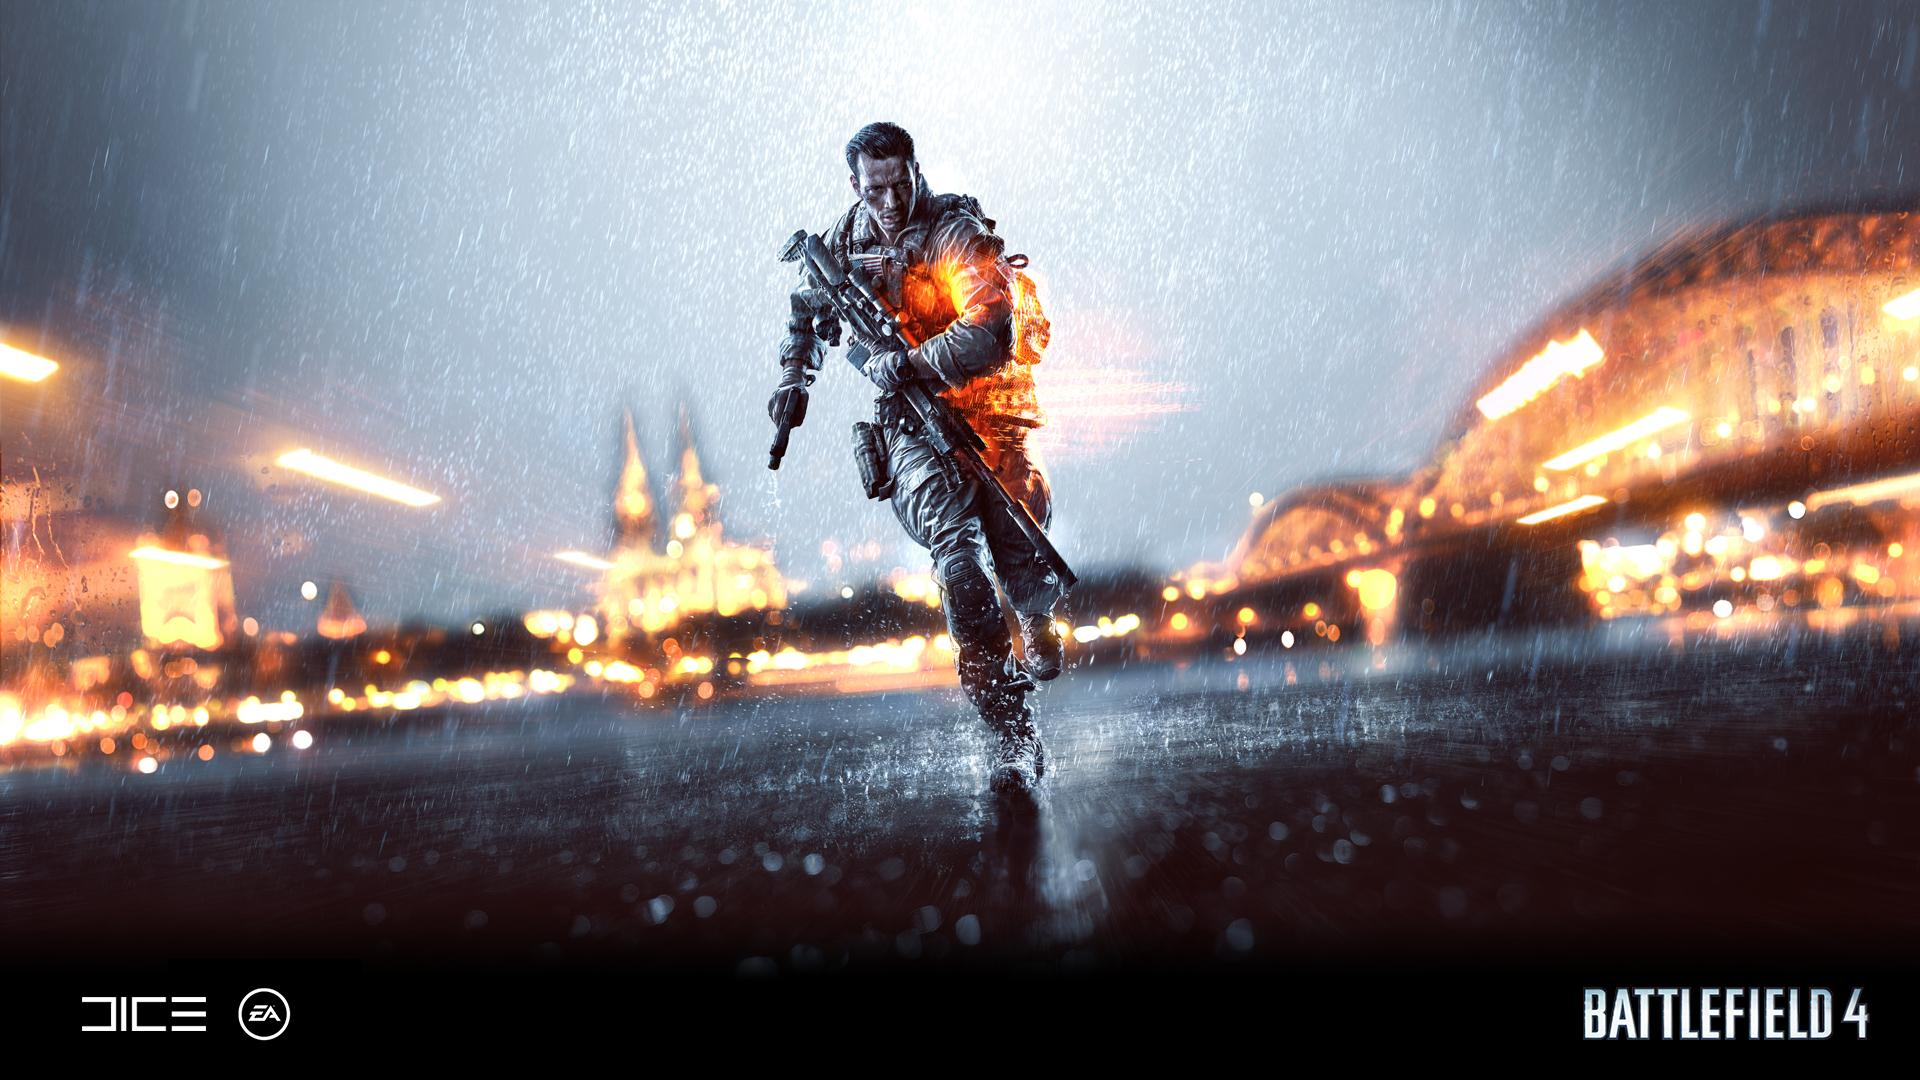 Battlefield 4 Computer Wallpapers Desktop Backgrounds 1920x1080 1920x1080